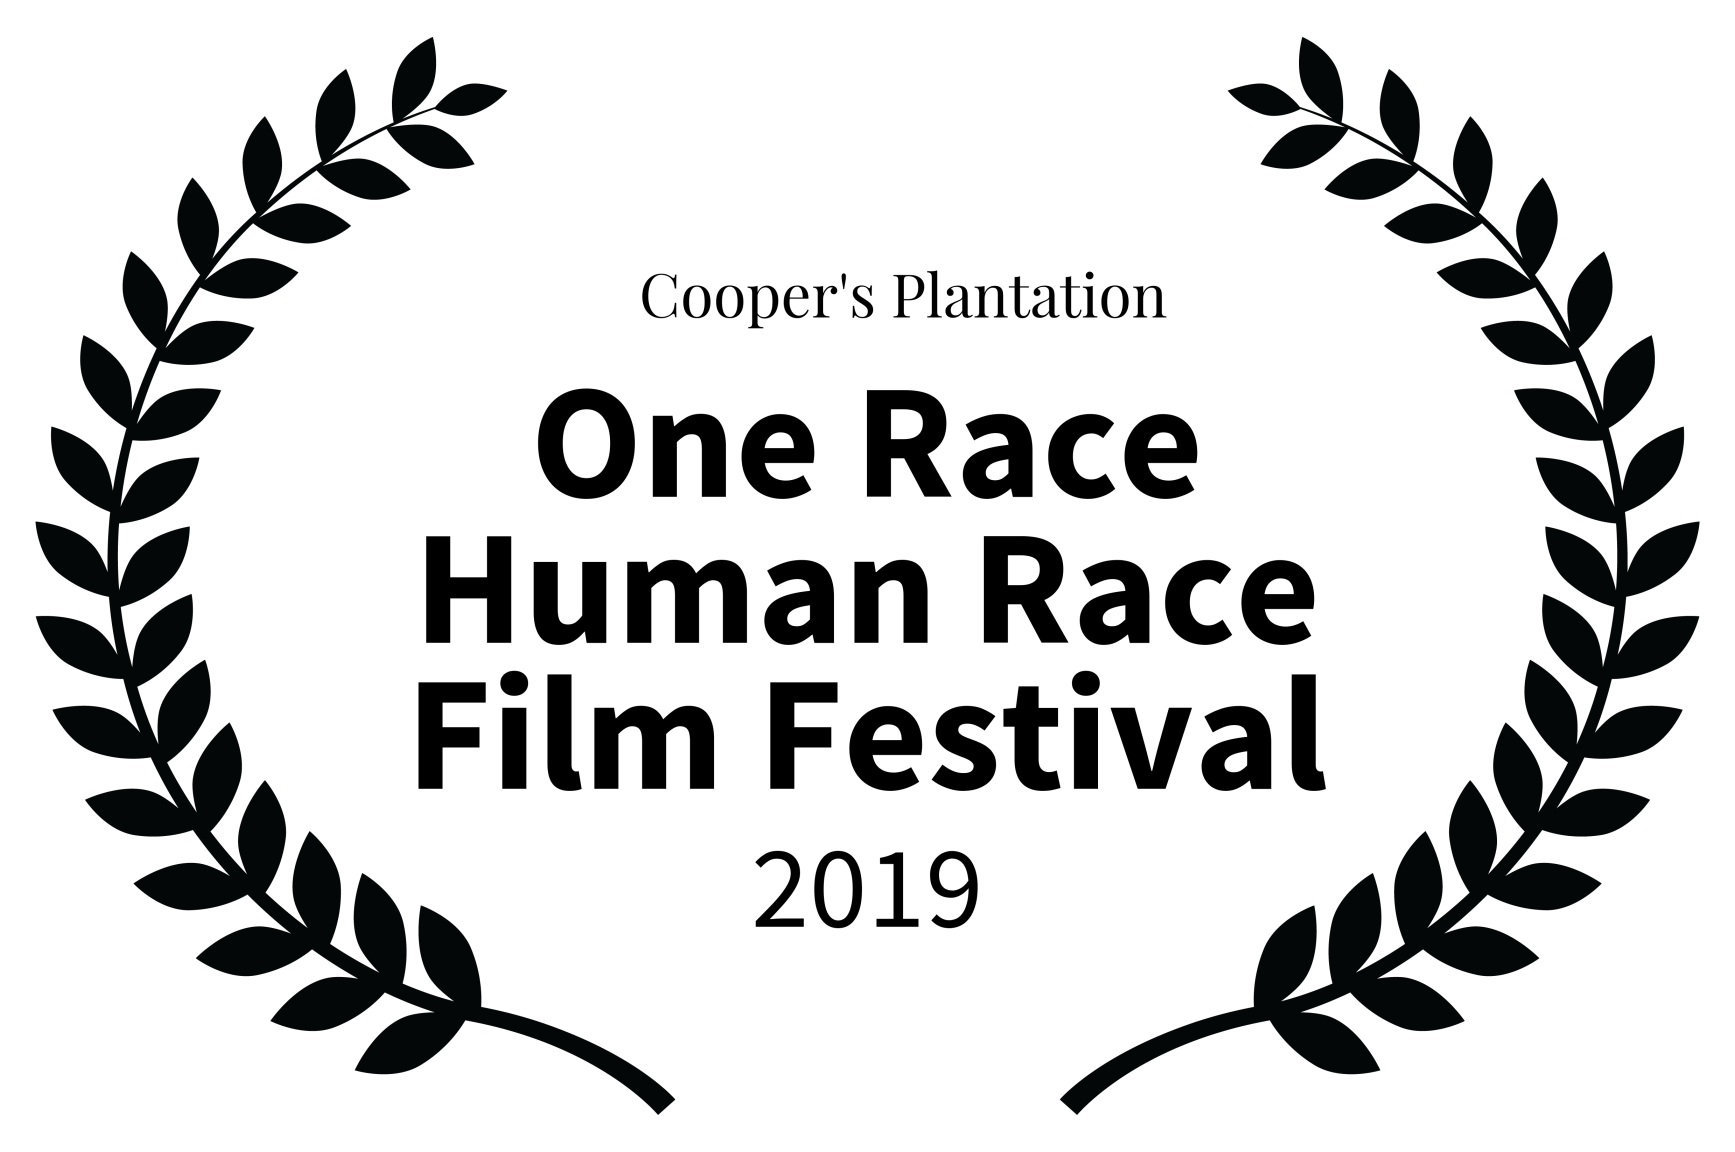 Coopers Plantation                - One Race Human Race Film Festival - 2019.png